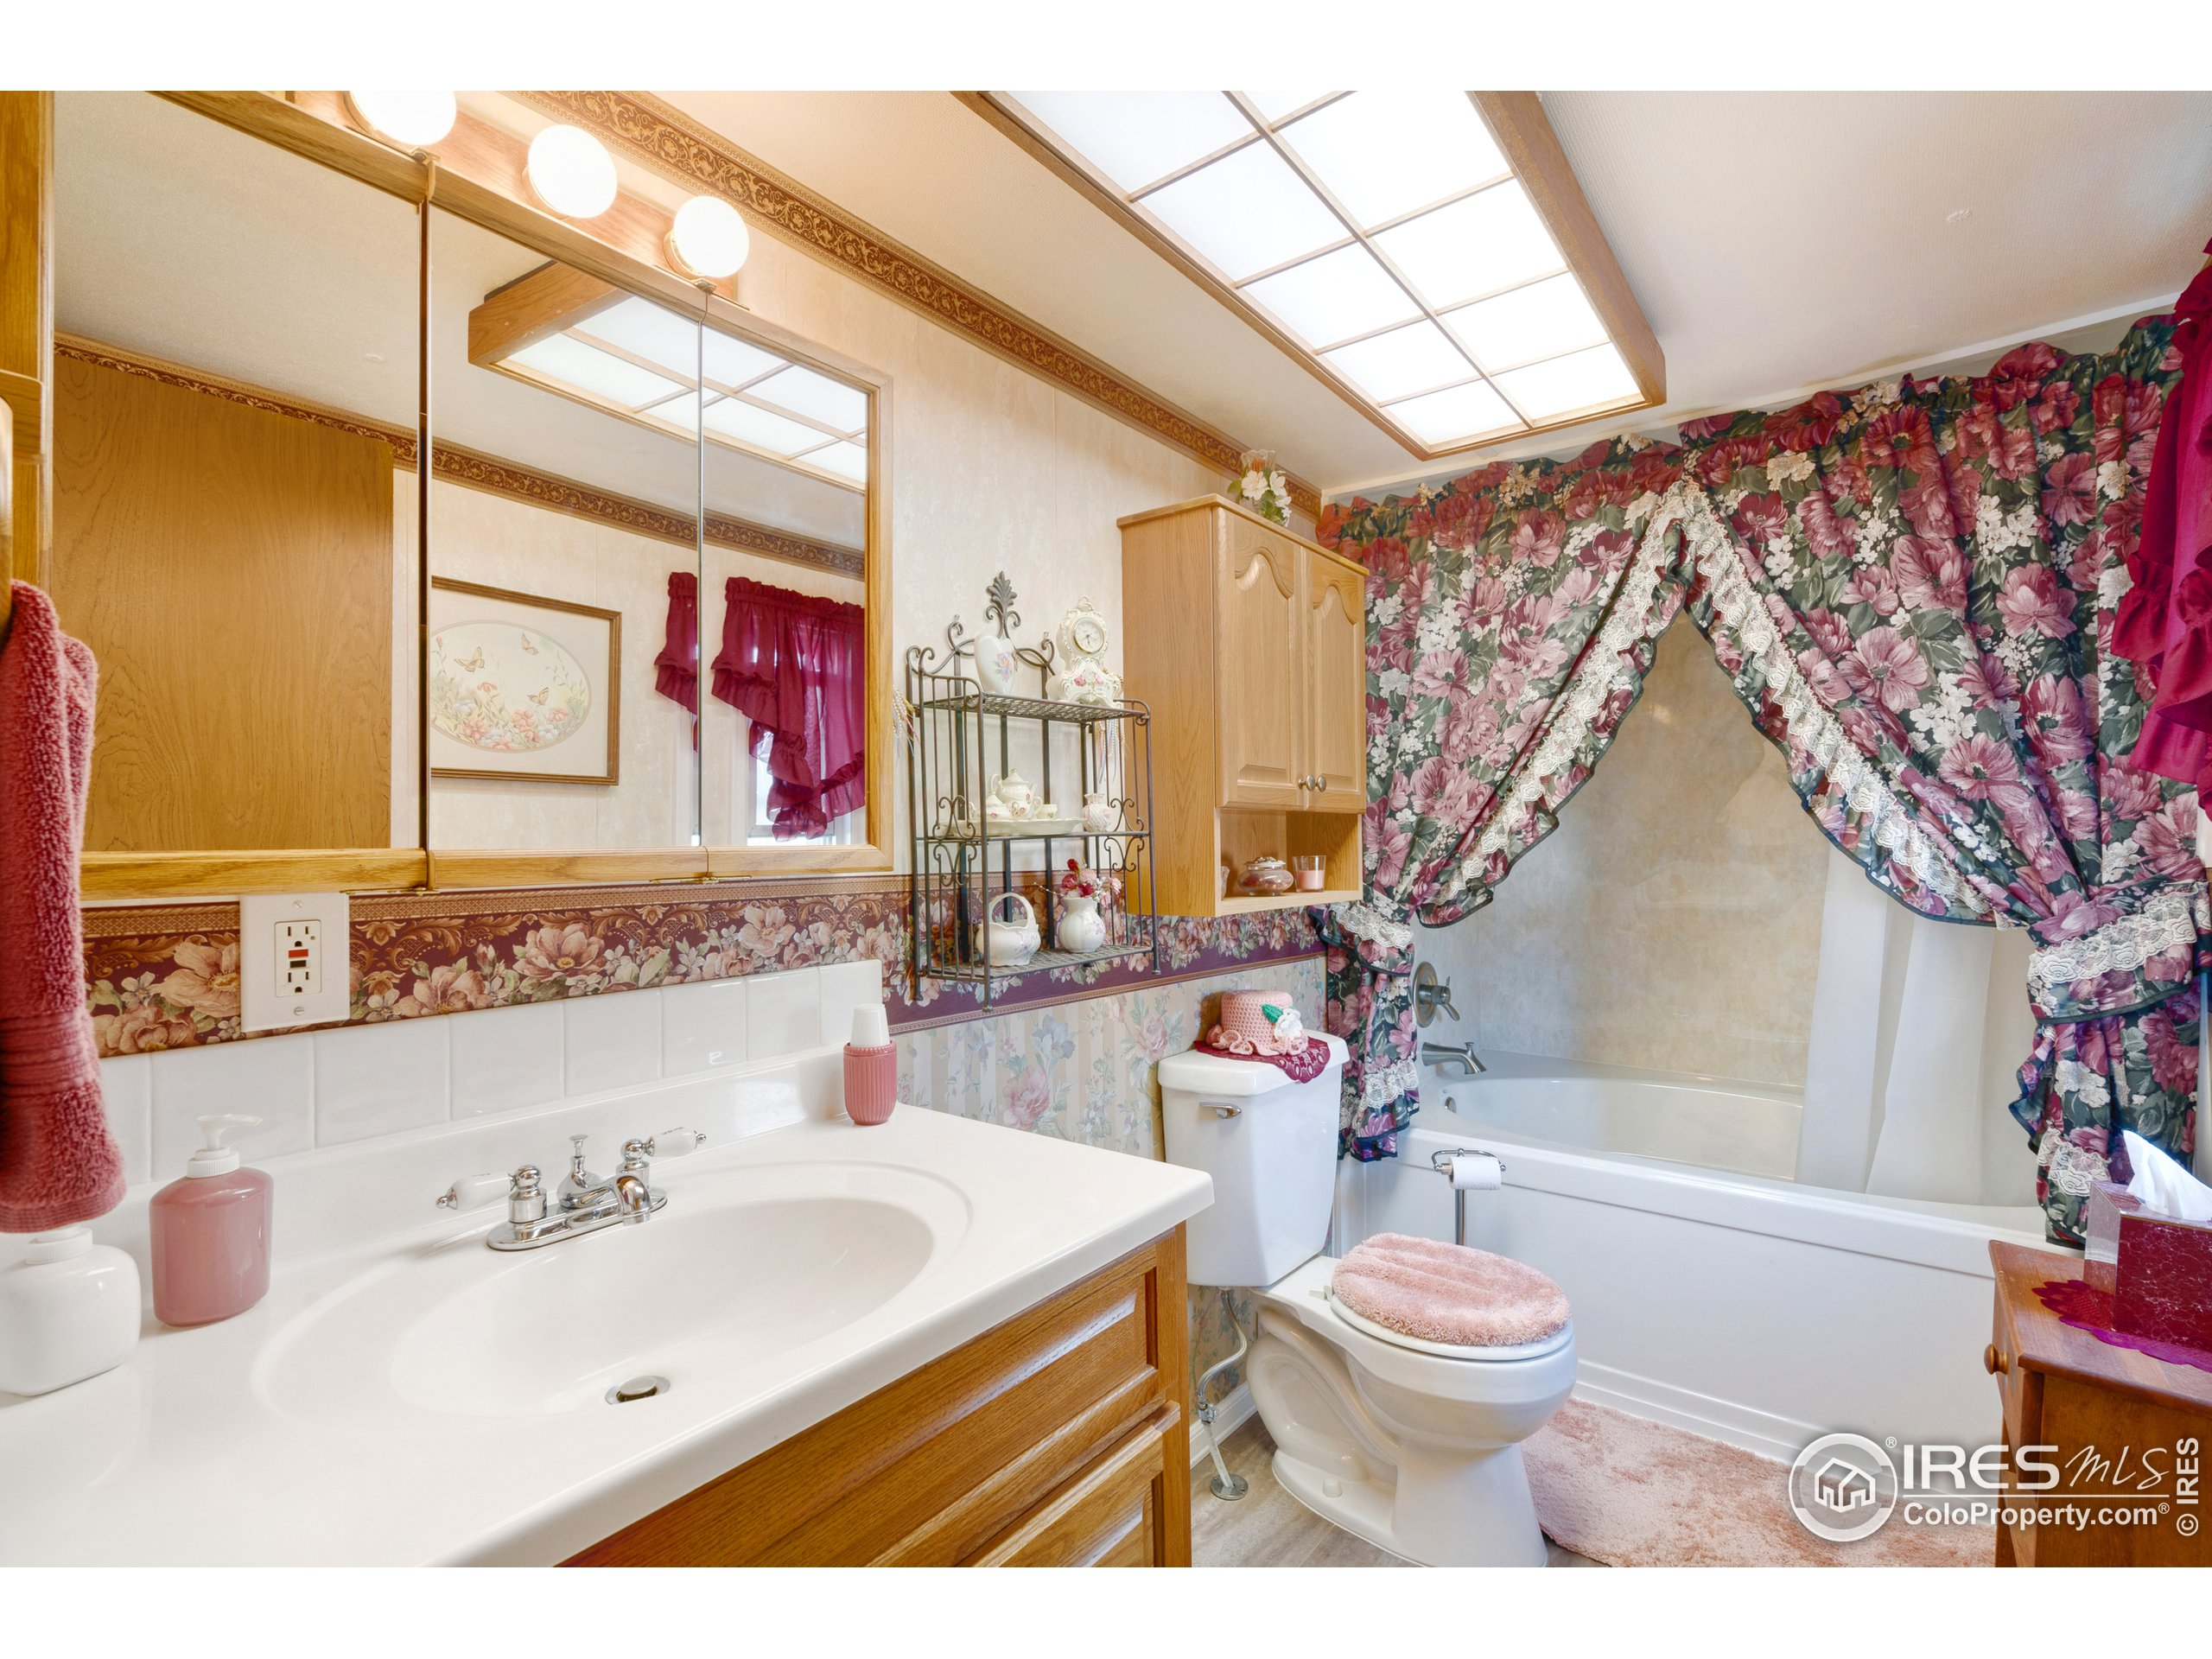 Primary bathroom with large tub